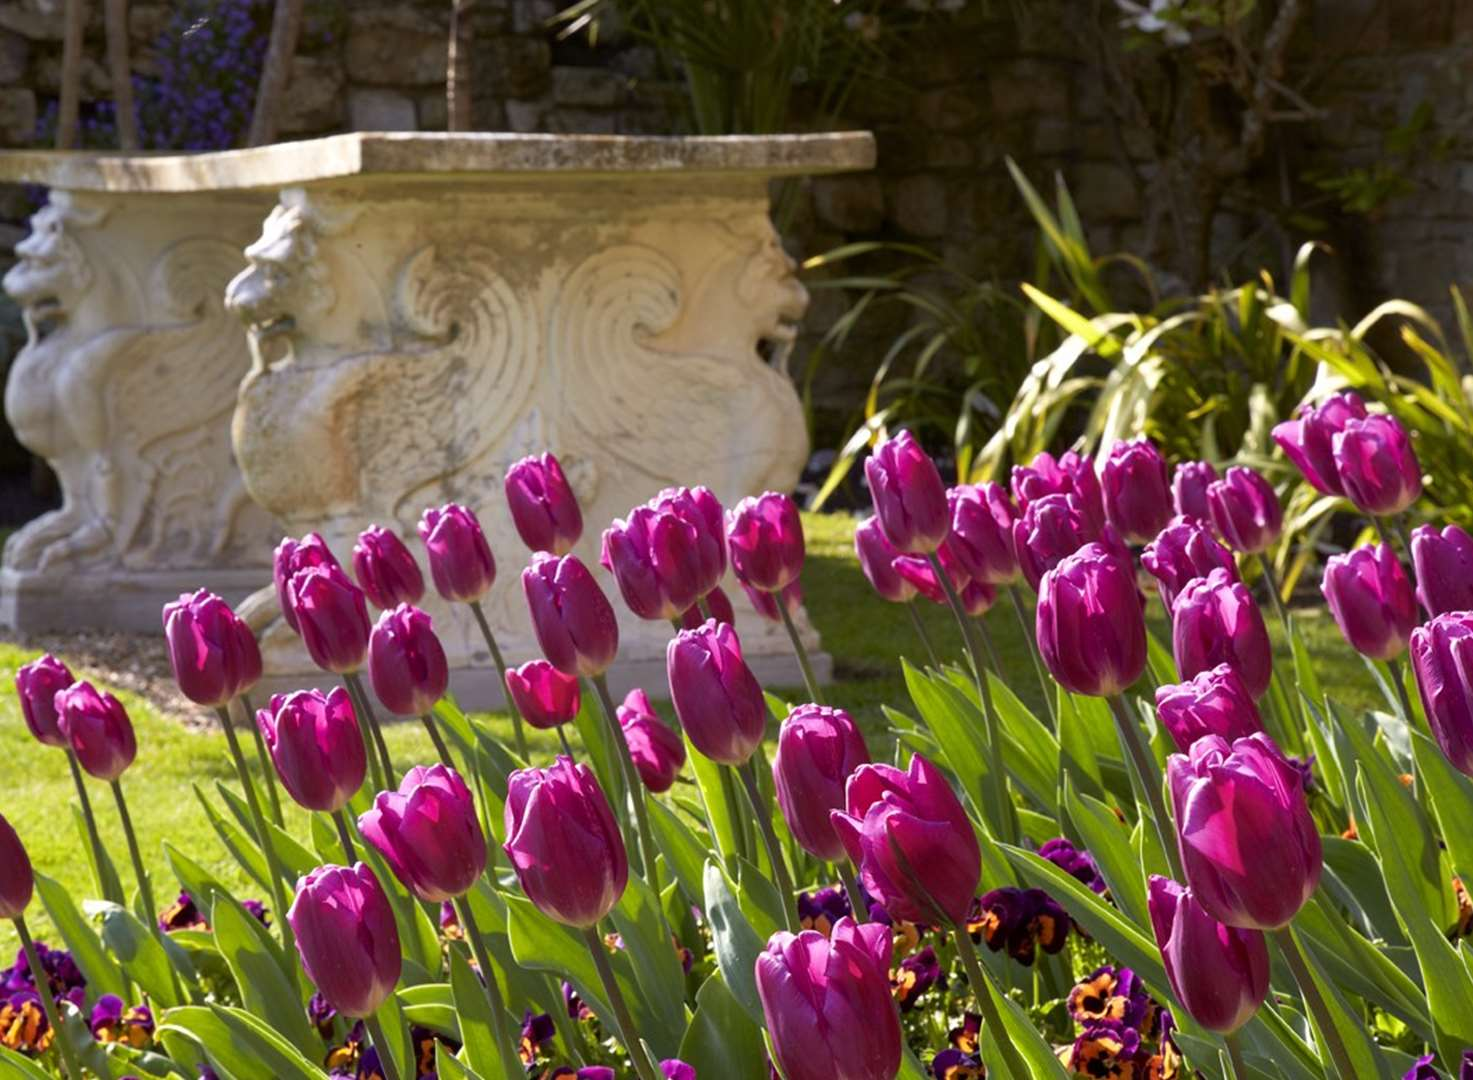 Early tulips are a seasonal surprise for experts